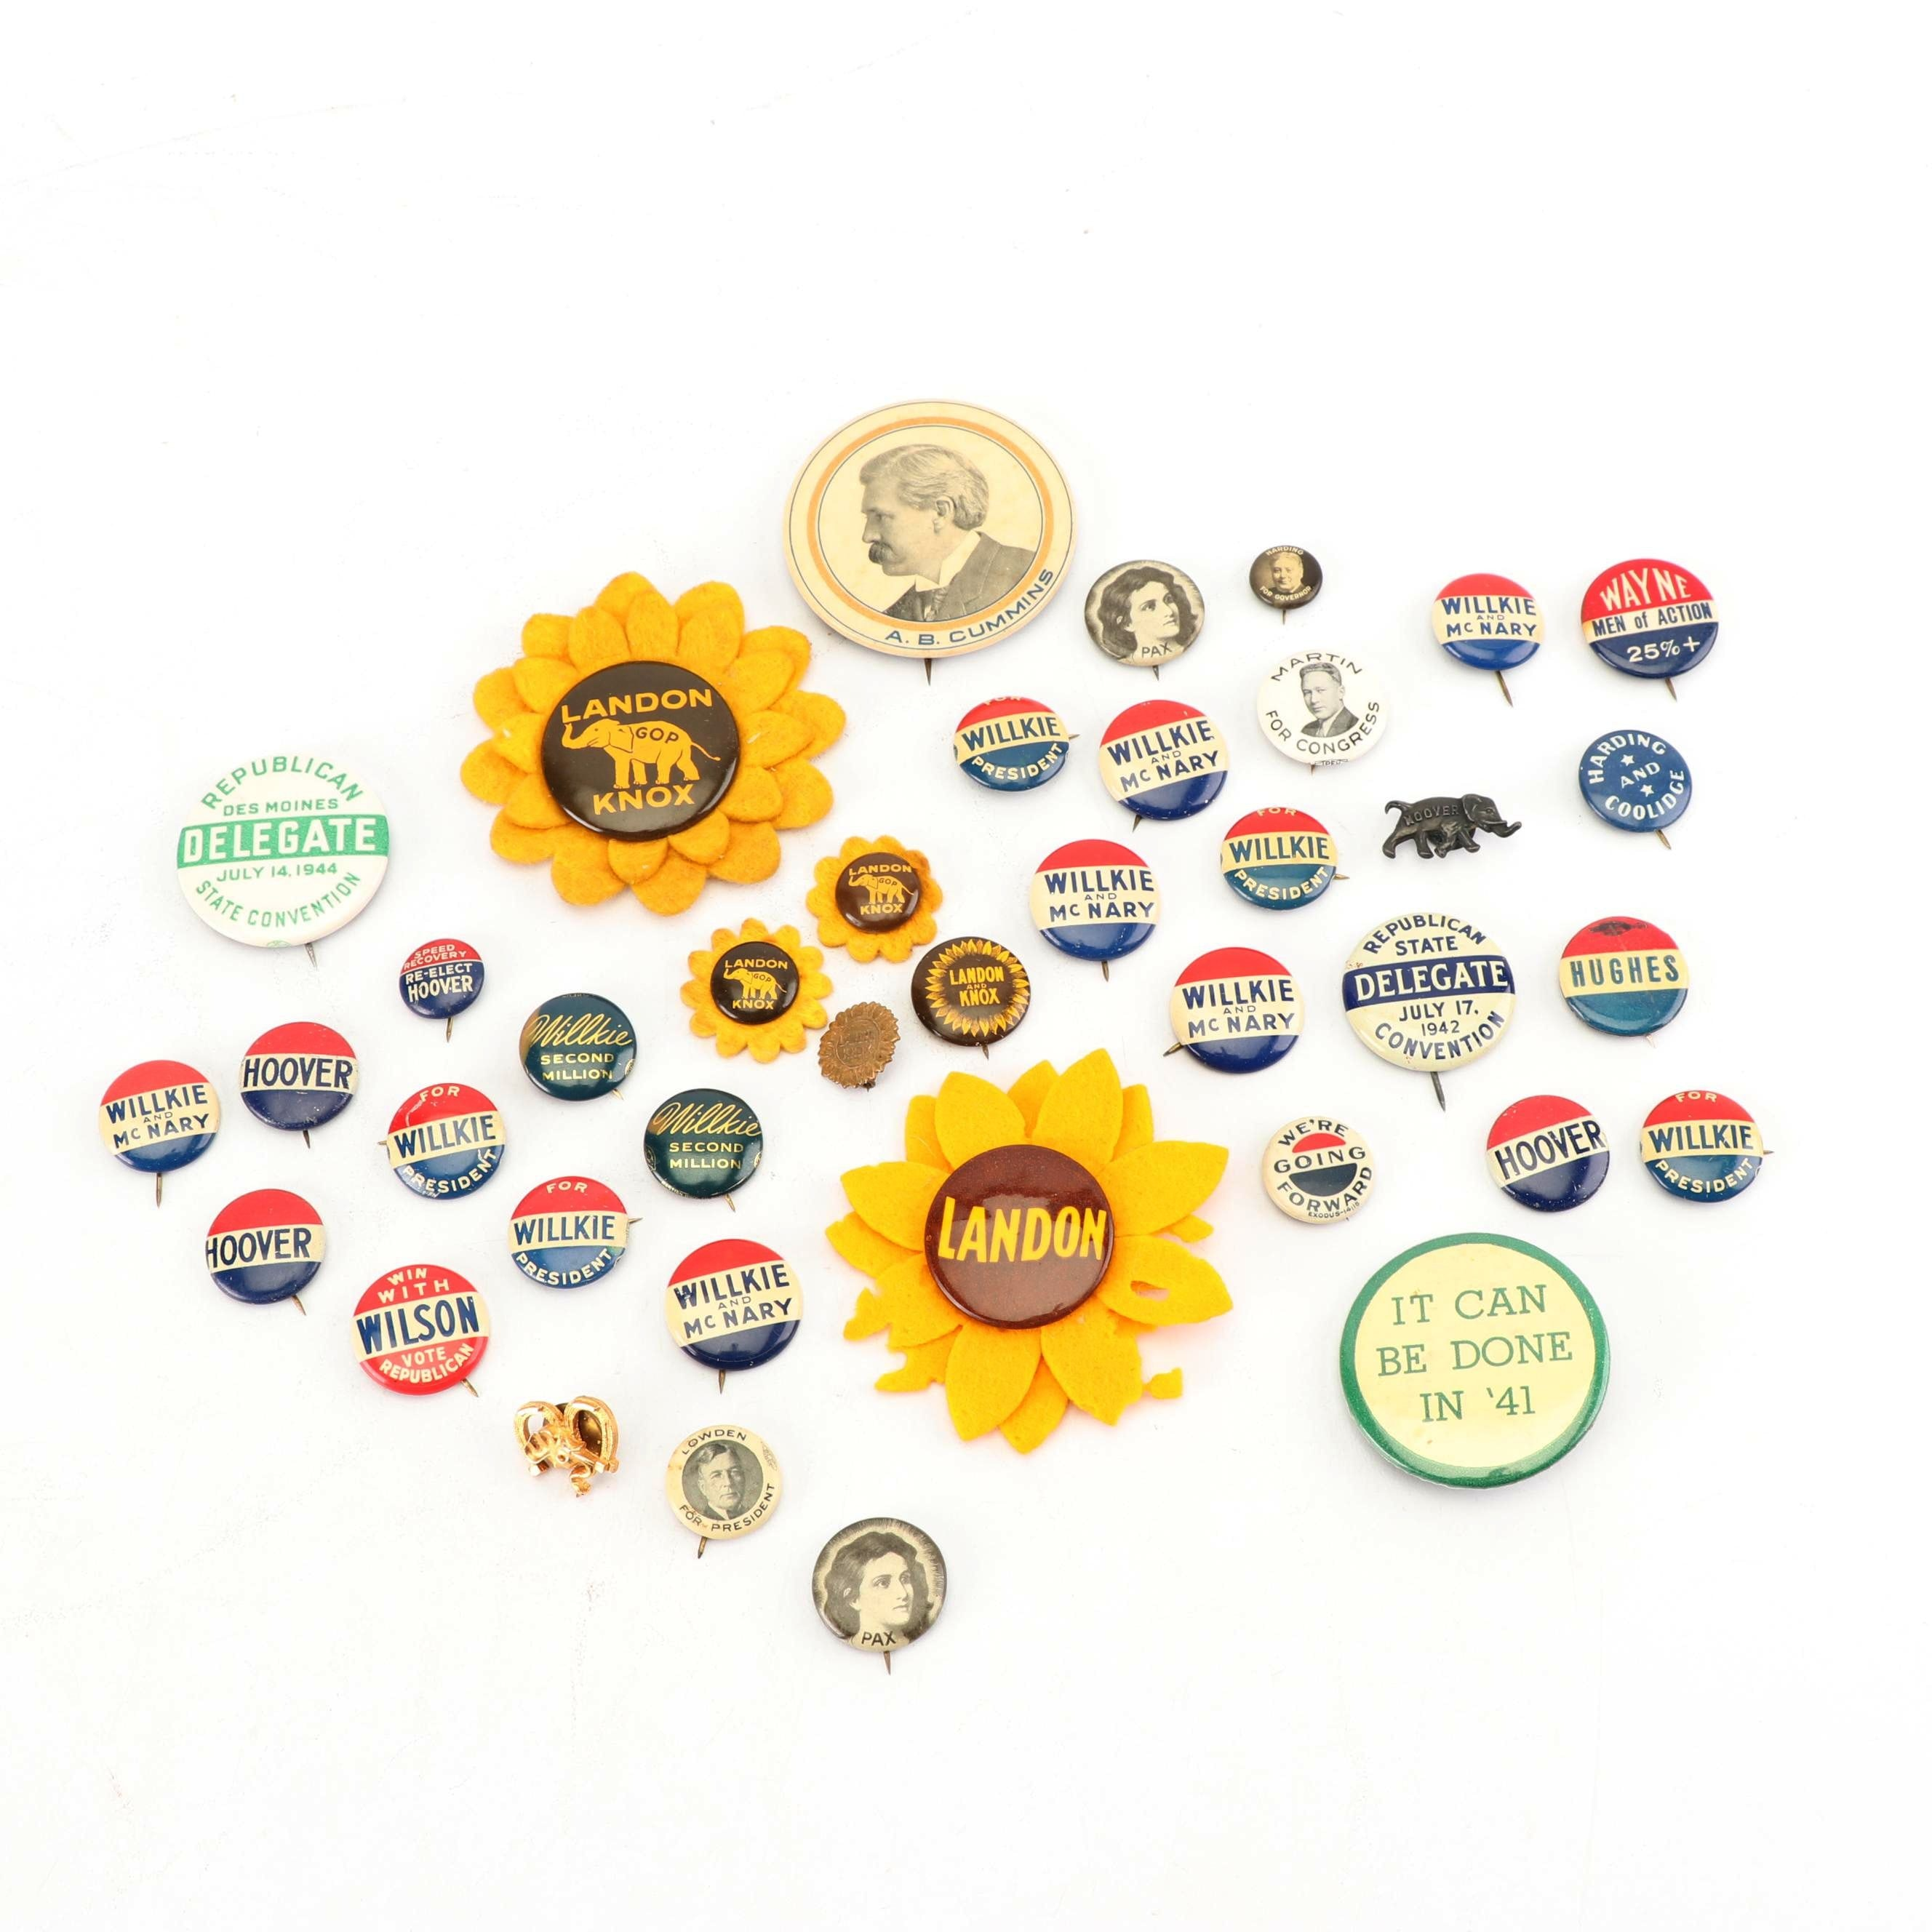 Archive of the Wesley Garner Family of Iowa, Mid 20th Century Campaign Pins